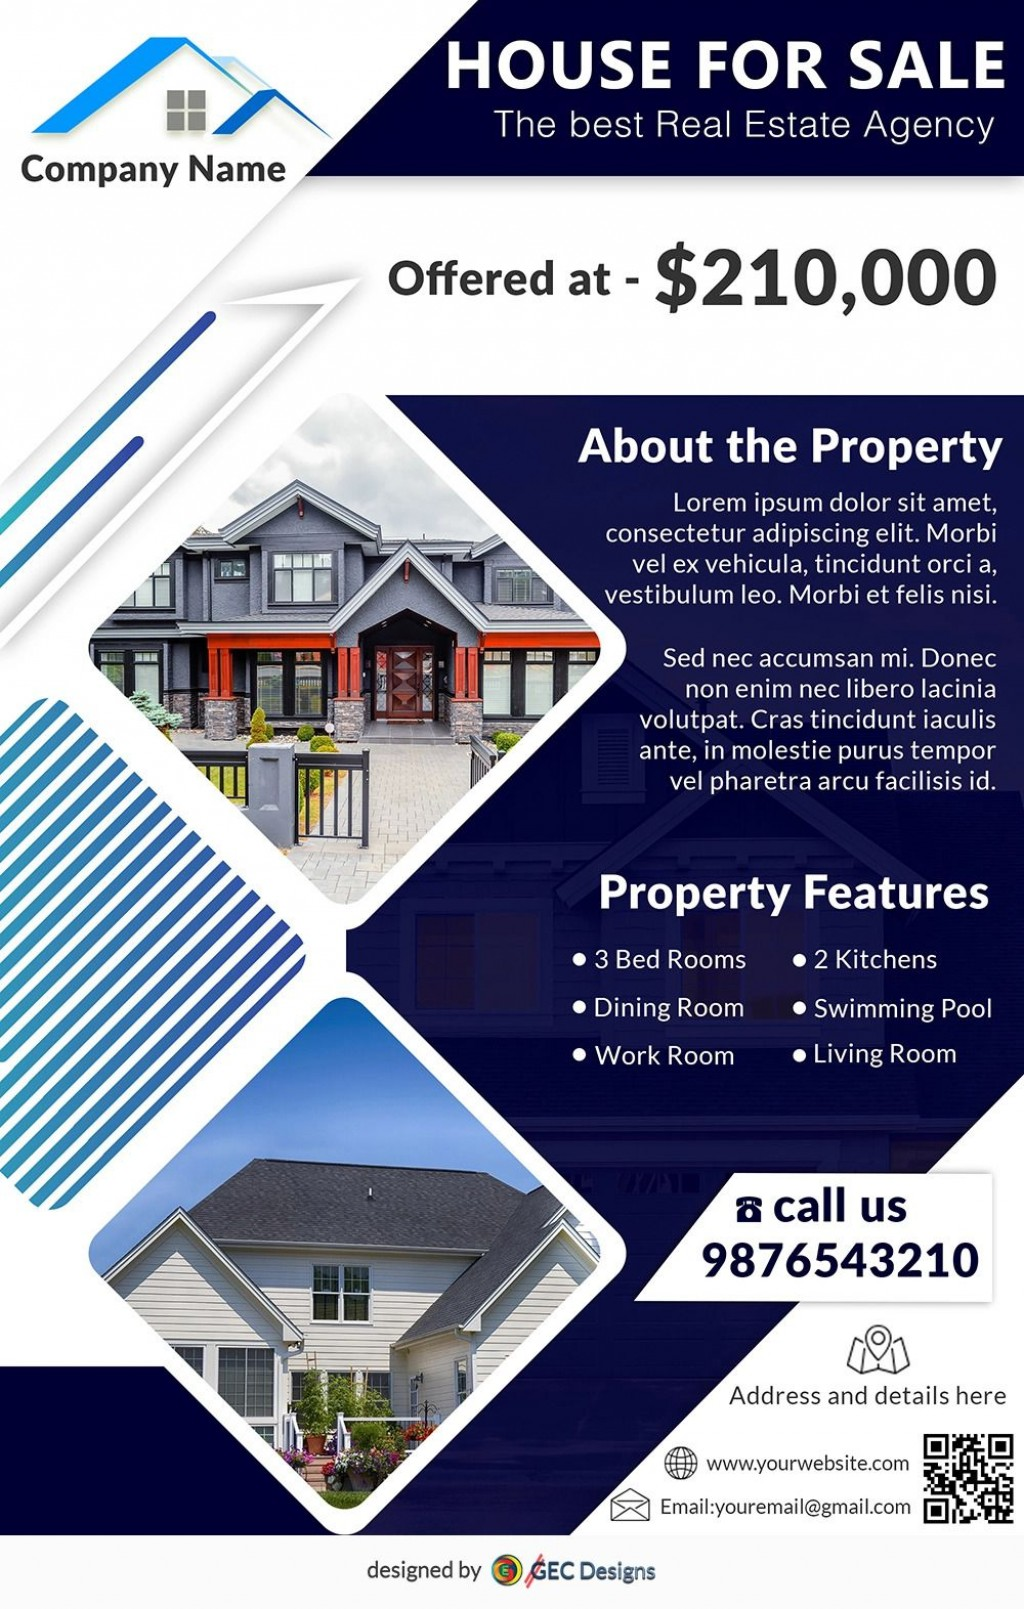 006 Archaicawful House For Sale Flyer Template Highest Clarity  Free Real Estate Example By OwnerLarge